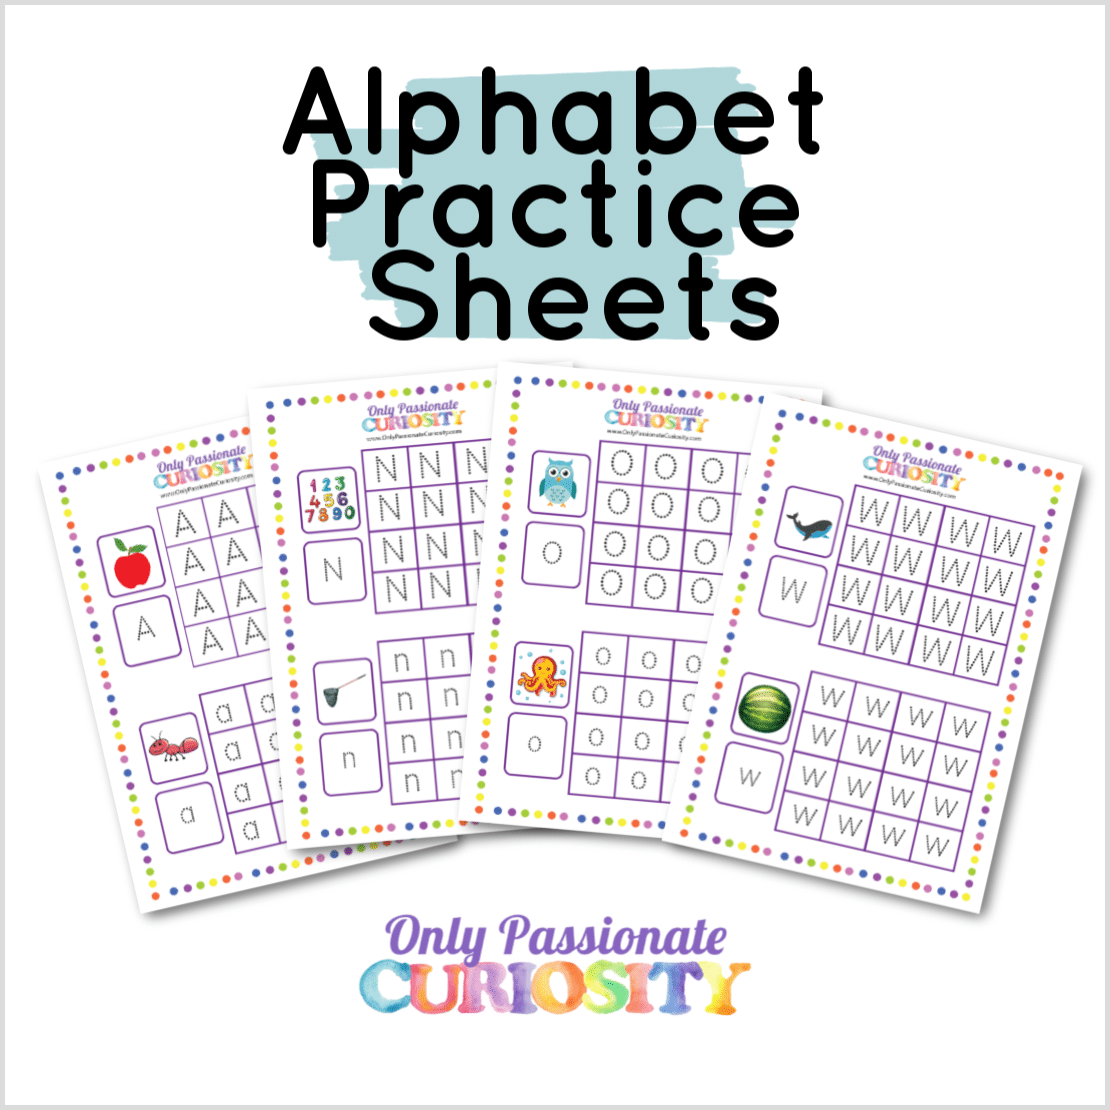 Alphabet Practice Worksheets - Only Passionate Curiosity